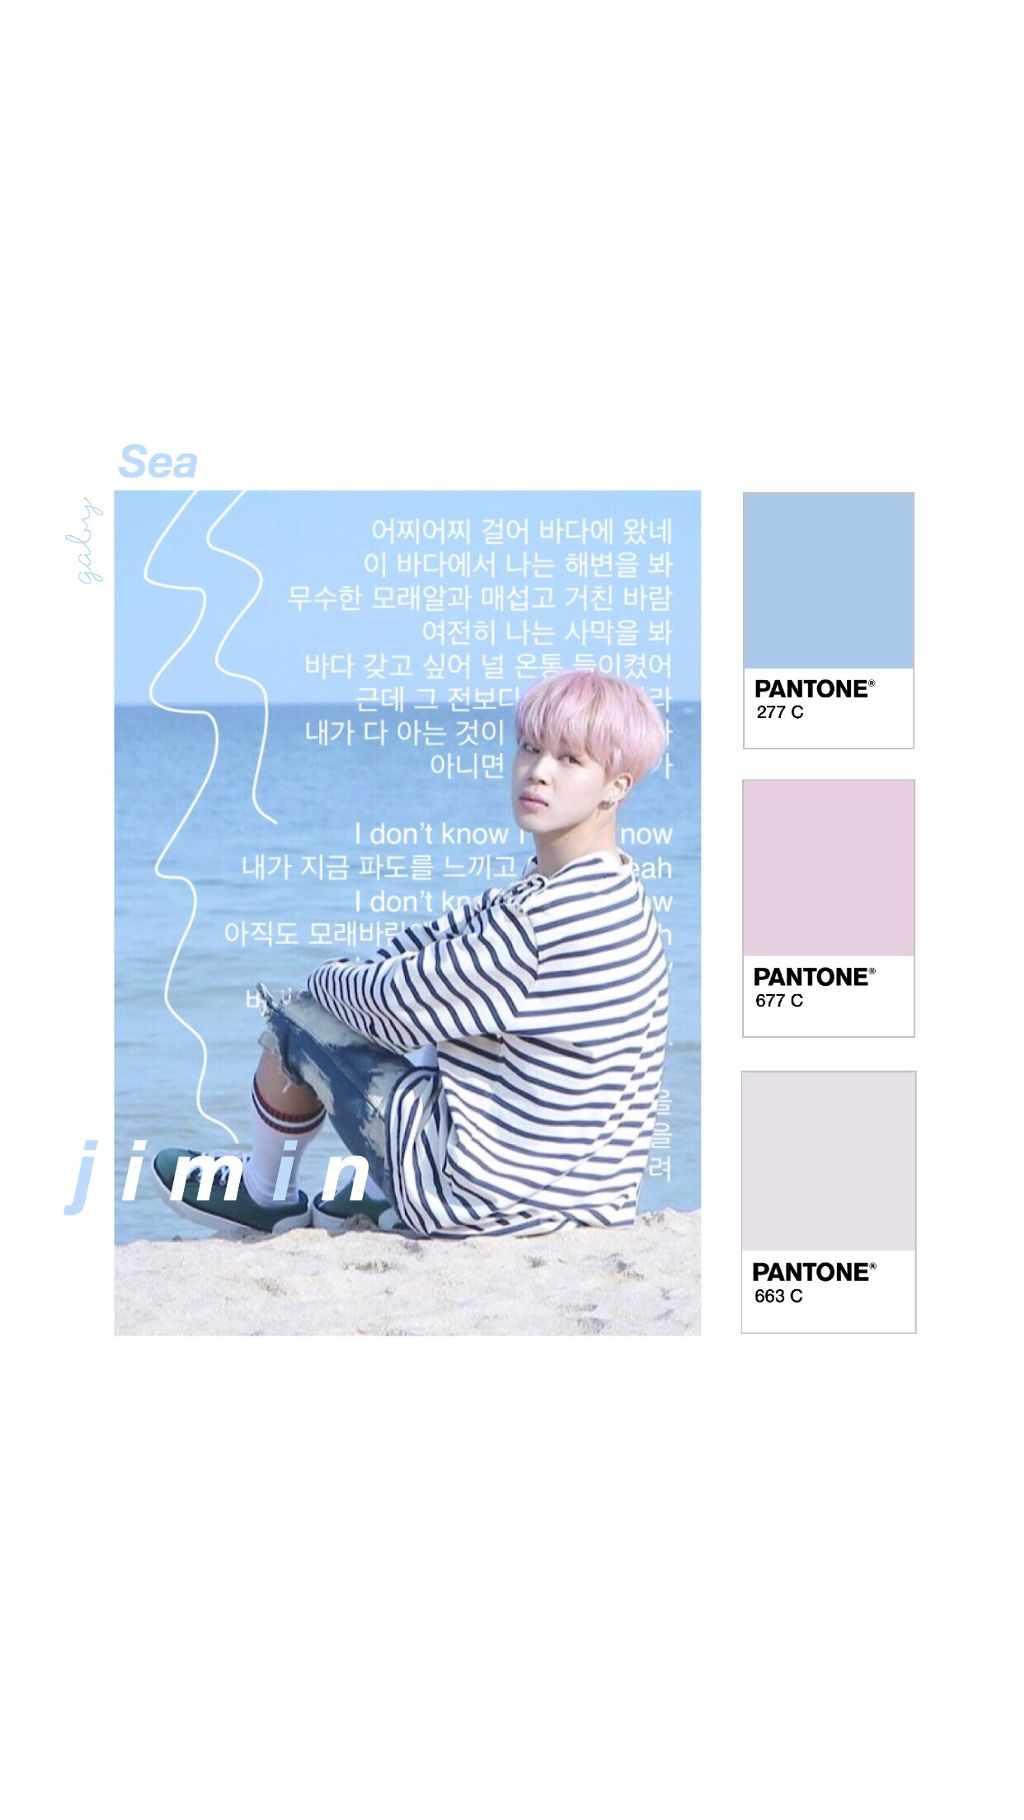 park jimin 💙 — Sea is such a nice, relaxing song  — k